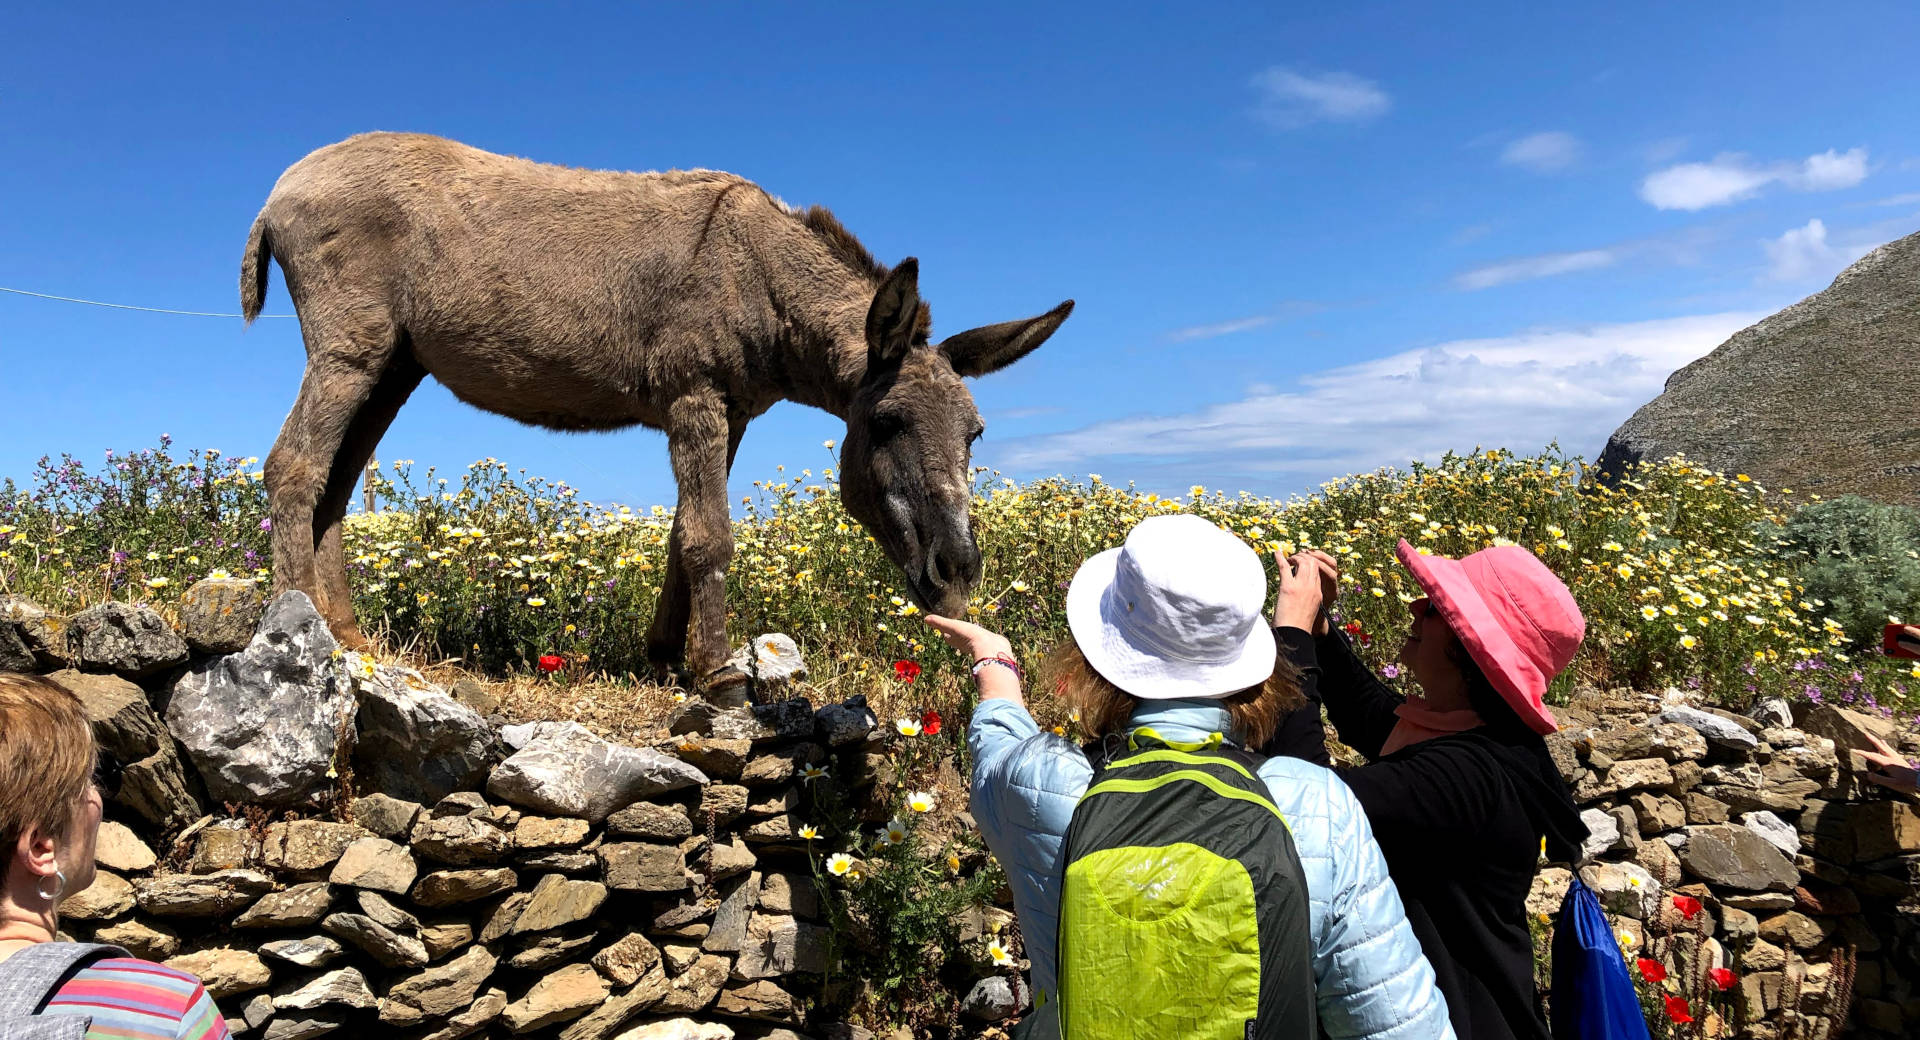 Two women feeding friendly donkey on stone wall with flowers Greece walking tour vacation with The Blue Walk